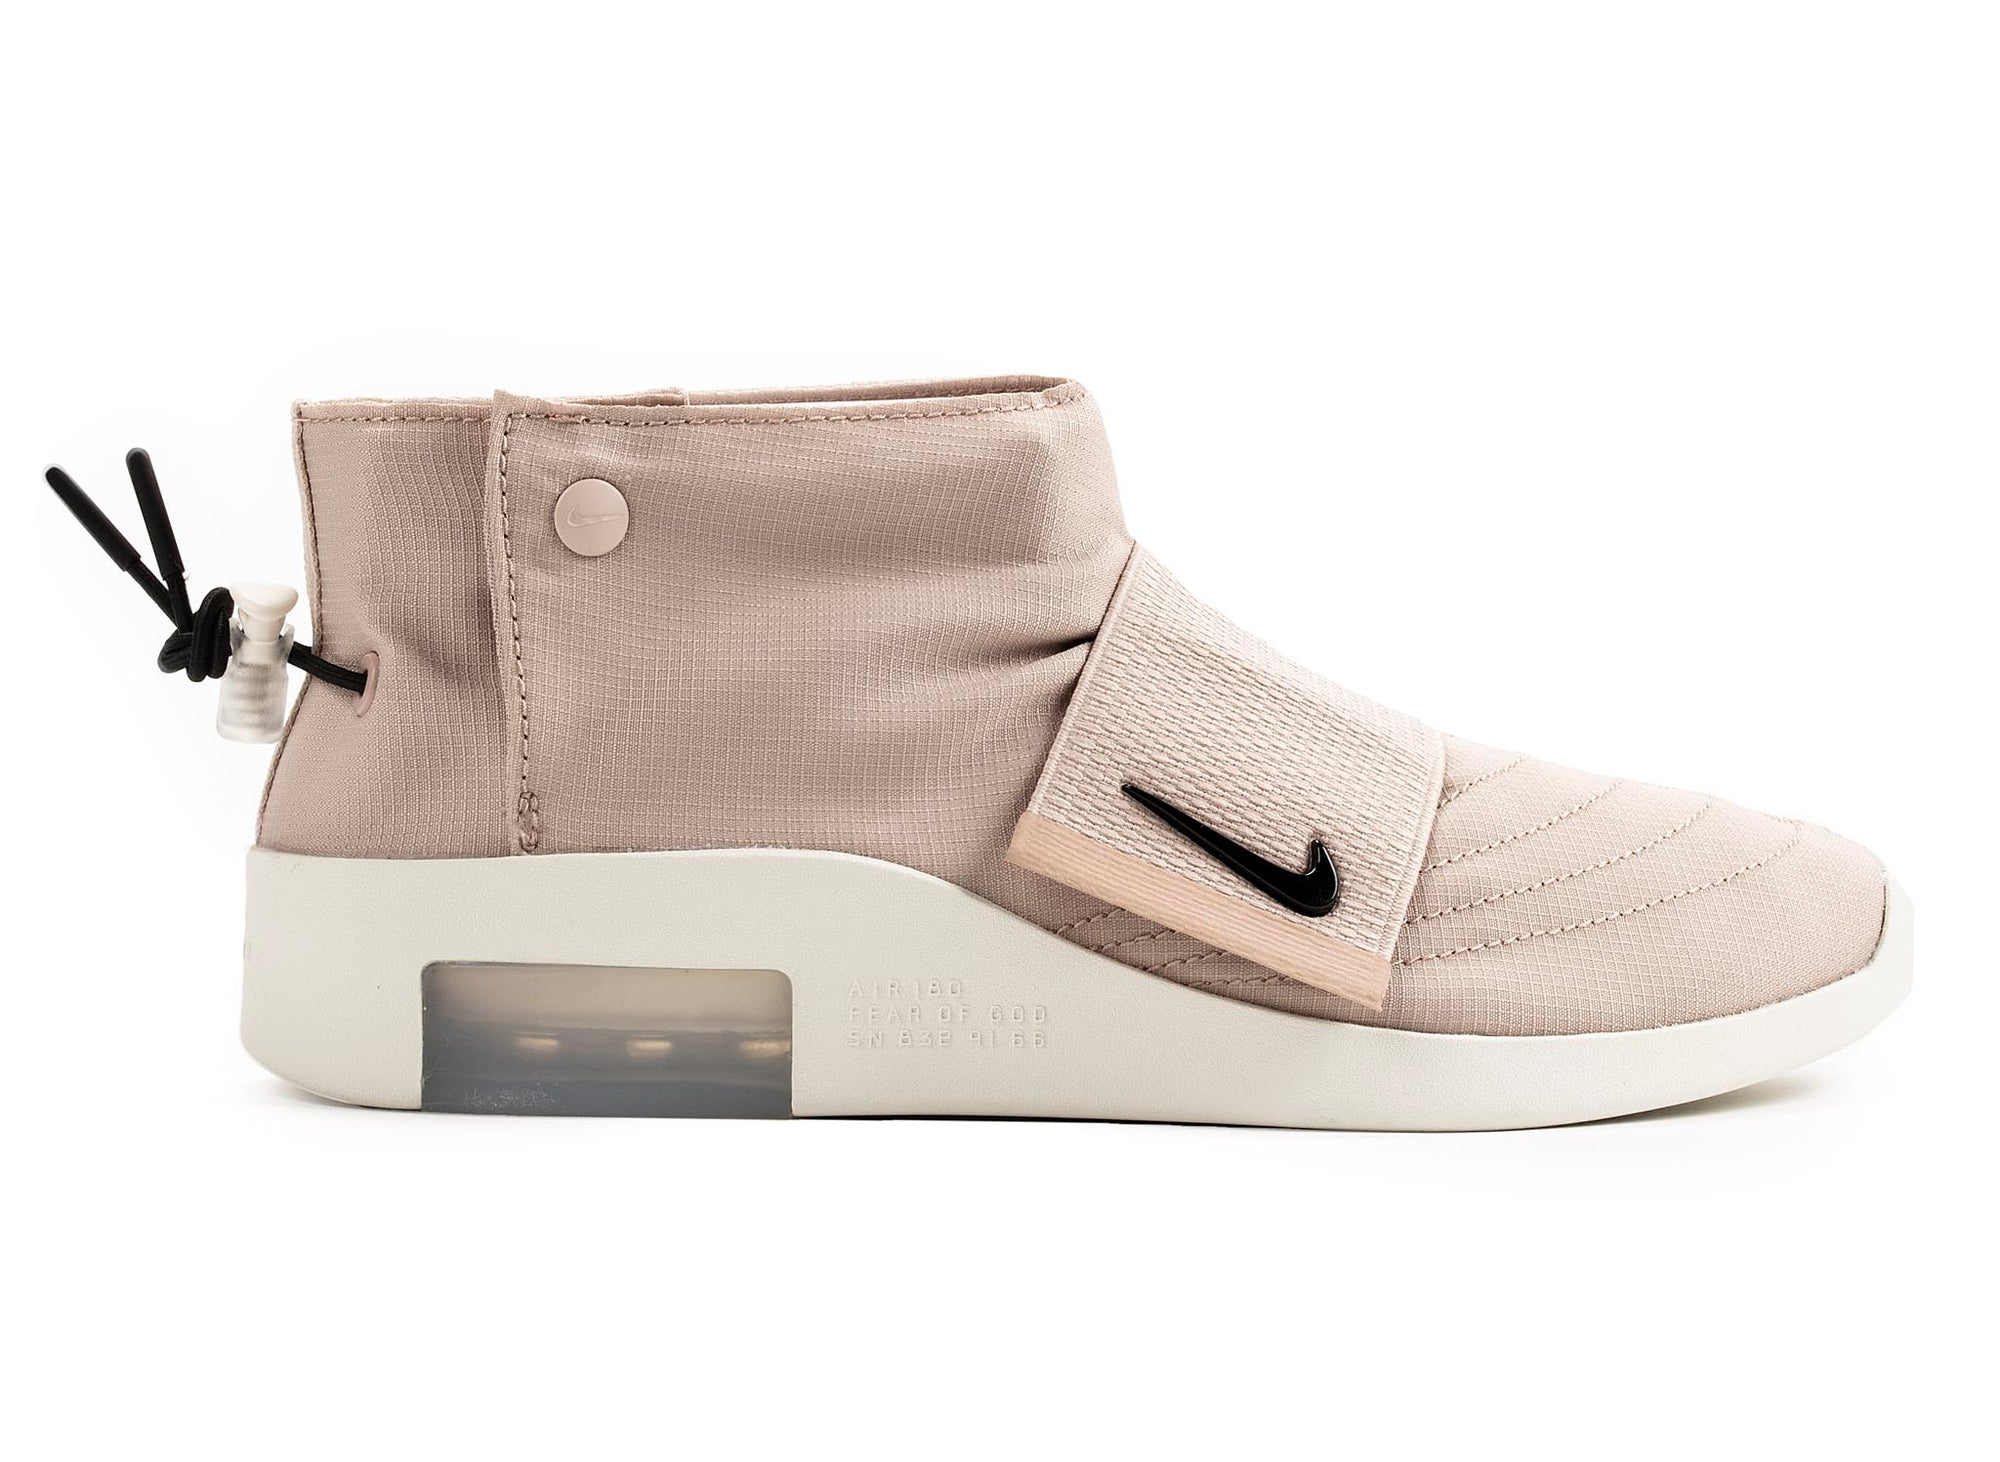 Nike Air x Fear of God Moc 'Particle Beige'